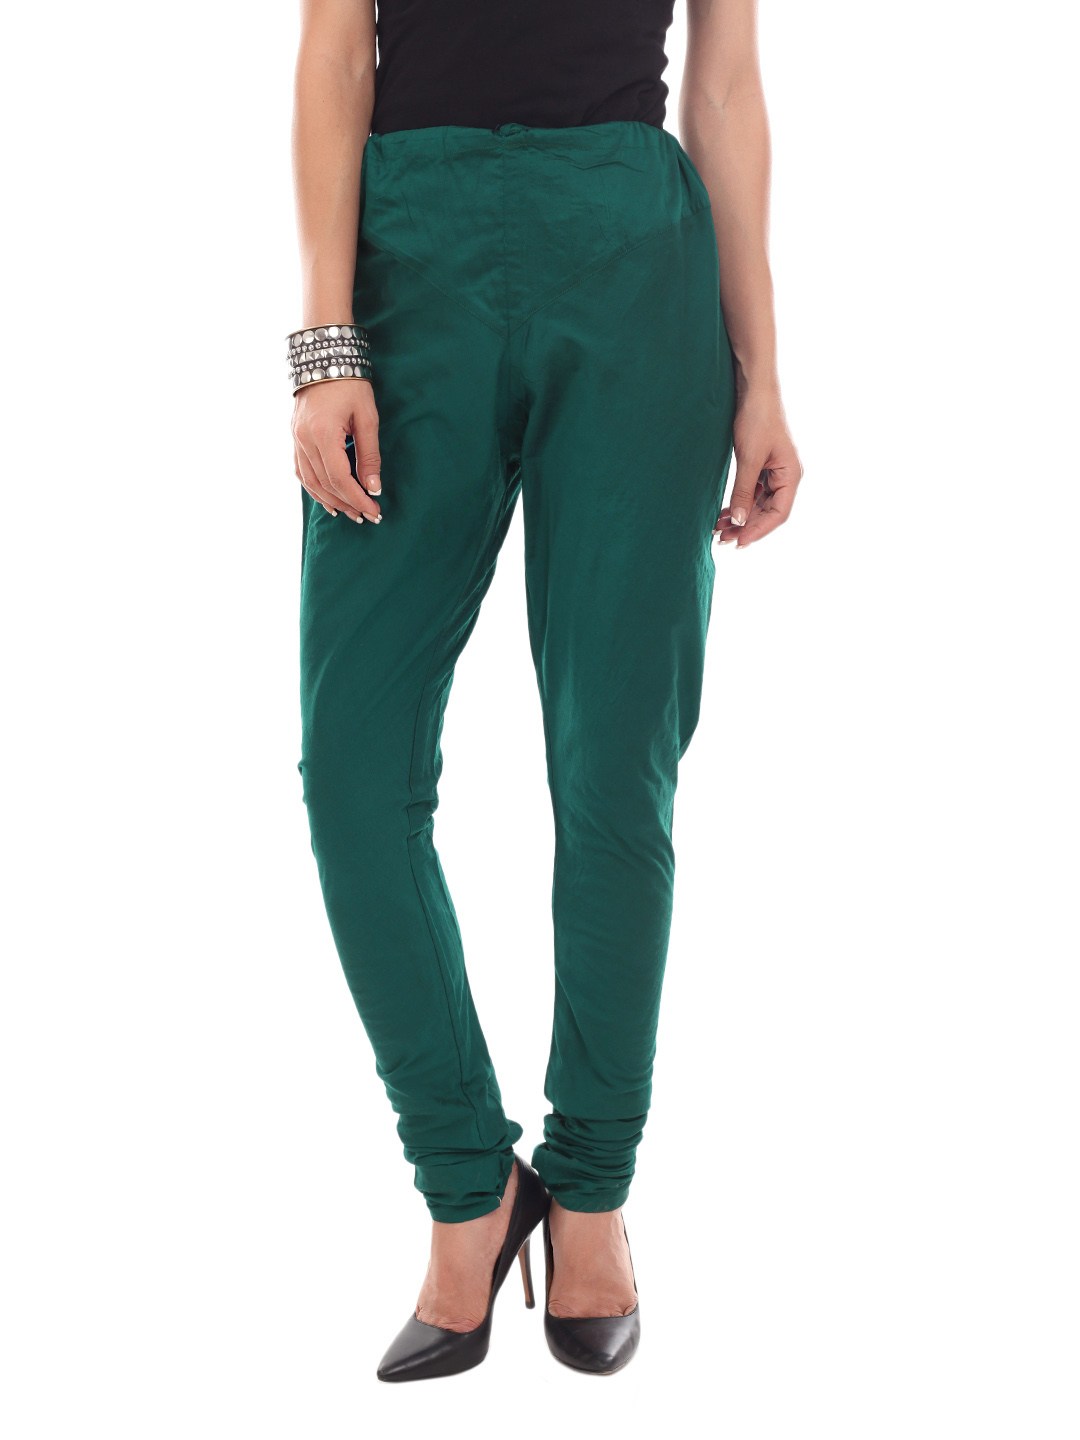 New Fashion 2015 Womens Pants Ladies Sexy Leggings Dark Green Sport High